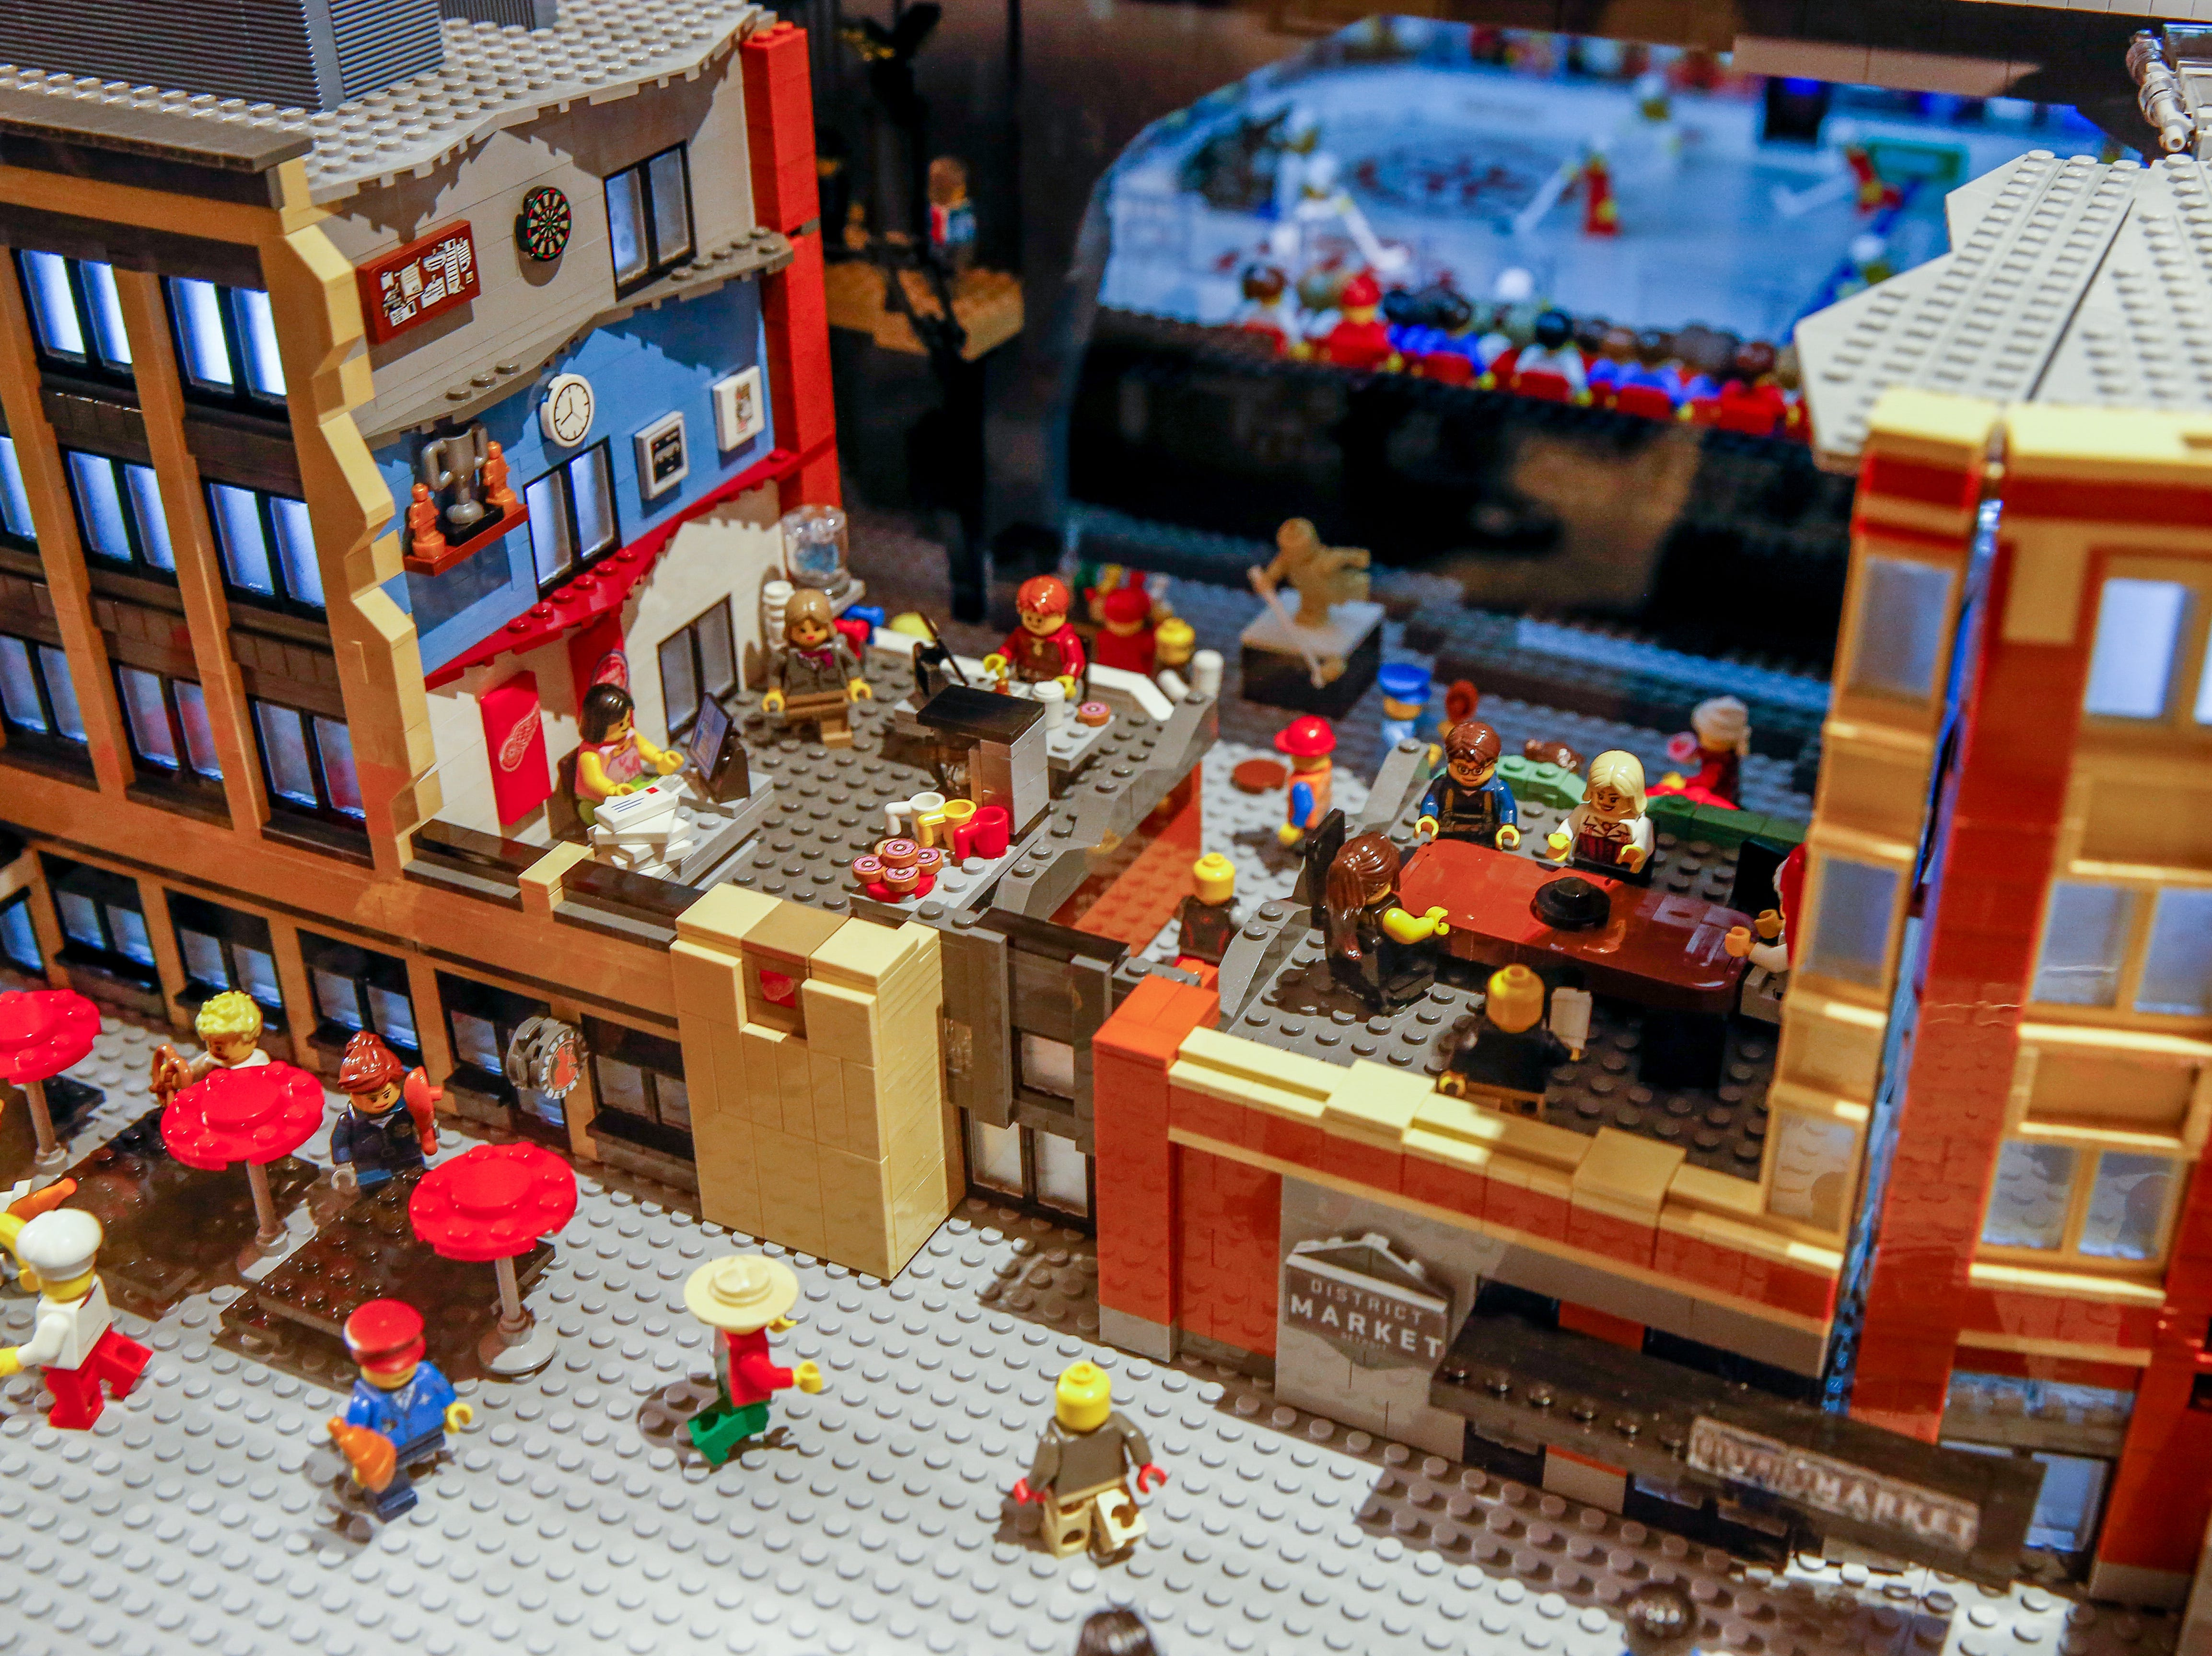 LEGO patrons dine at the District Market. A game can be seen in this cutaway view, as well as the statue of Gordie Howe.